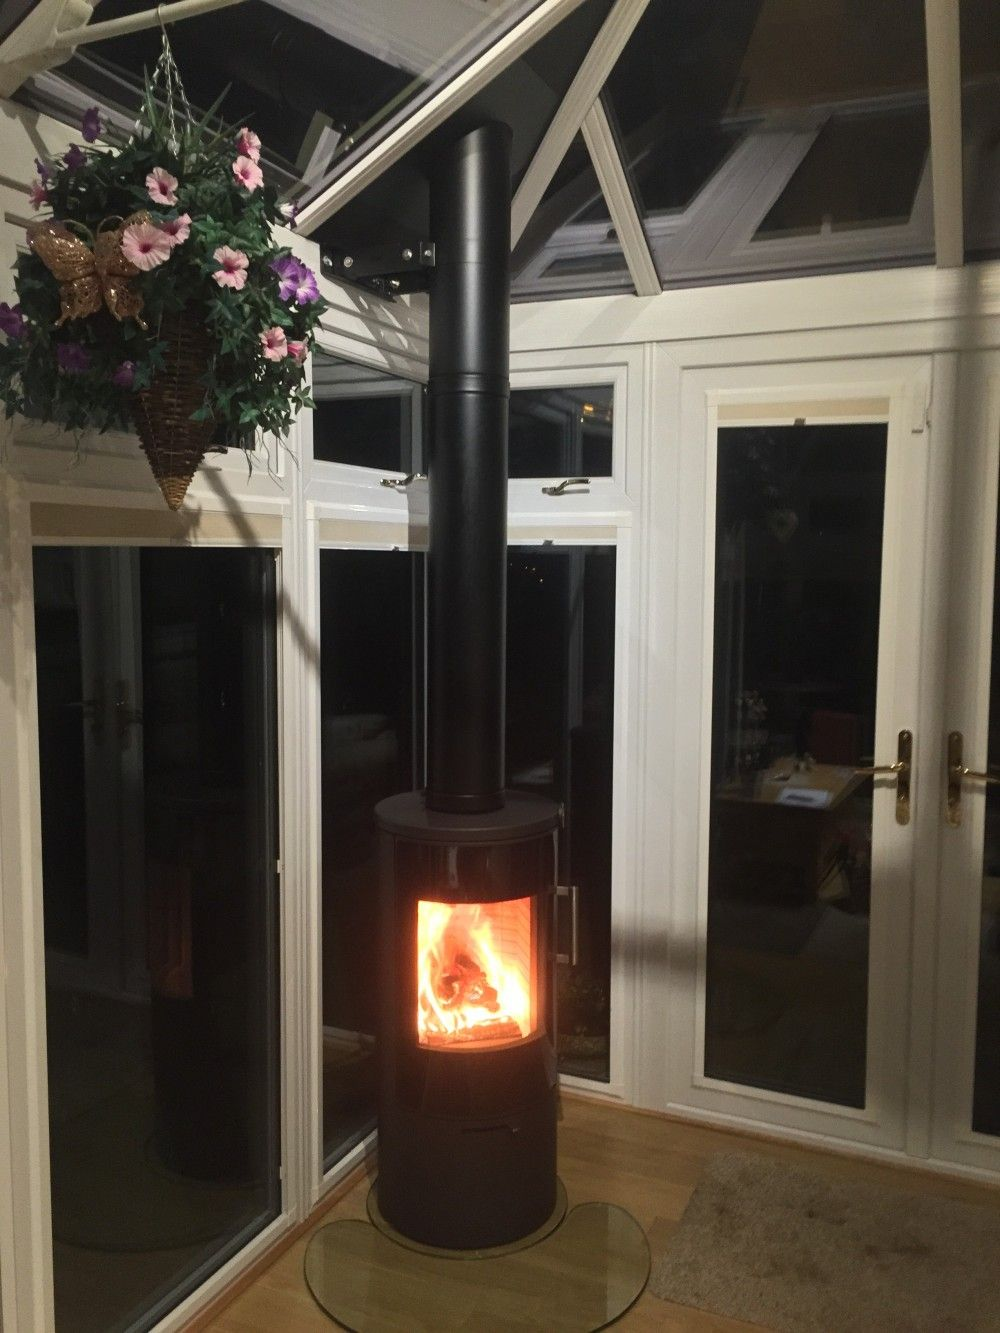 Fixing down the EPDM flashing | Contura 51L stove in a ...